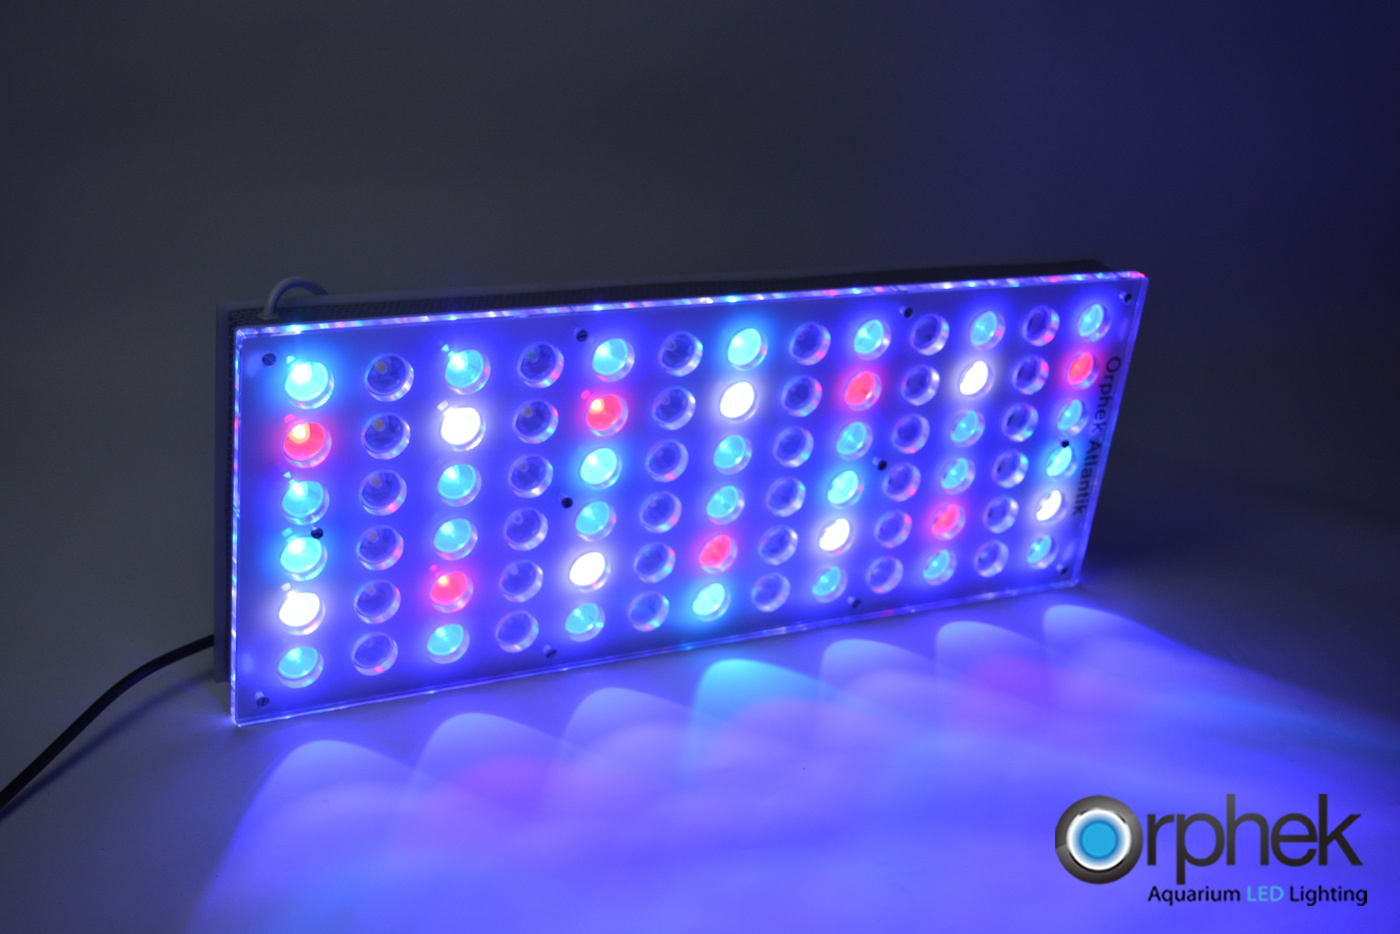 Orphek-Atlantik-v2-1-LED-Aquarium-Light-ALL-channel-2+4